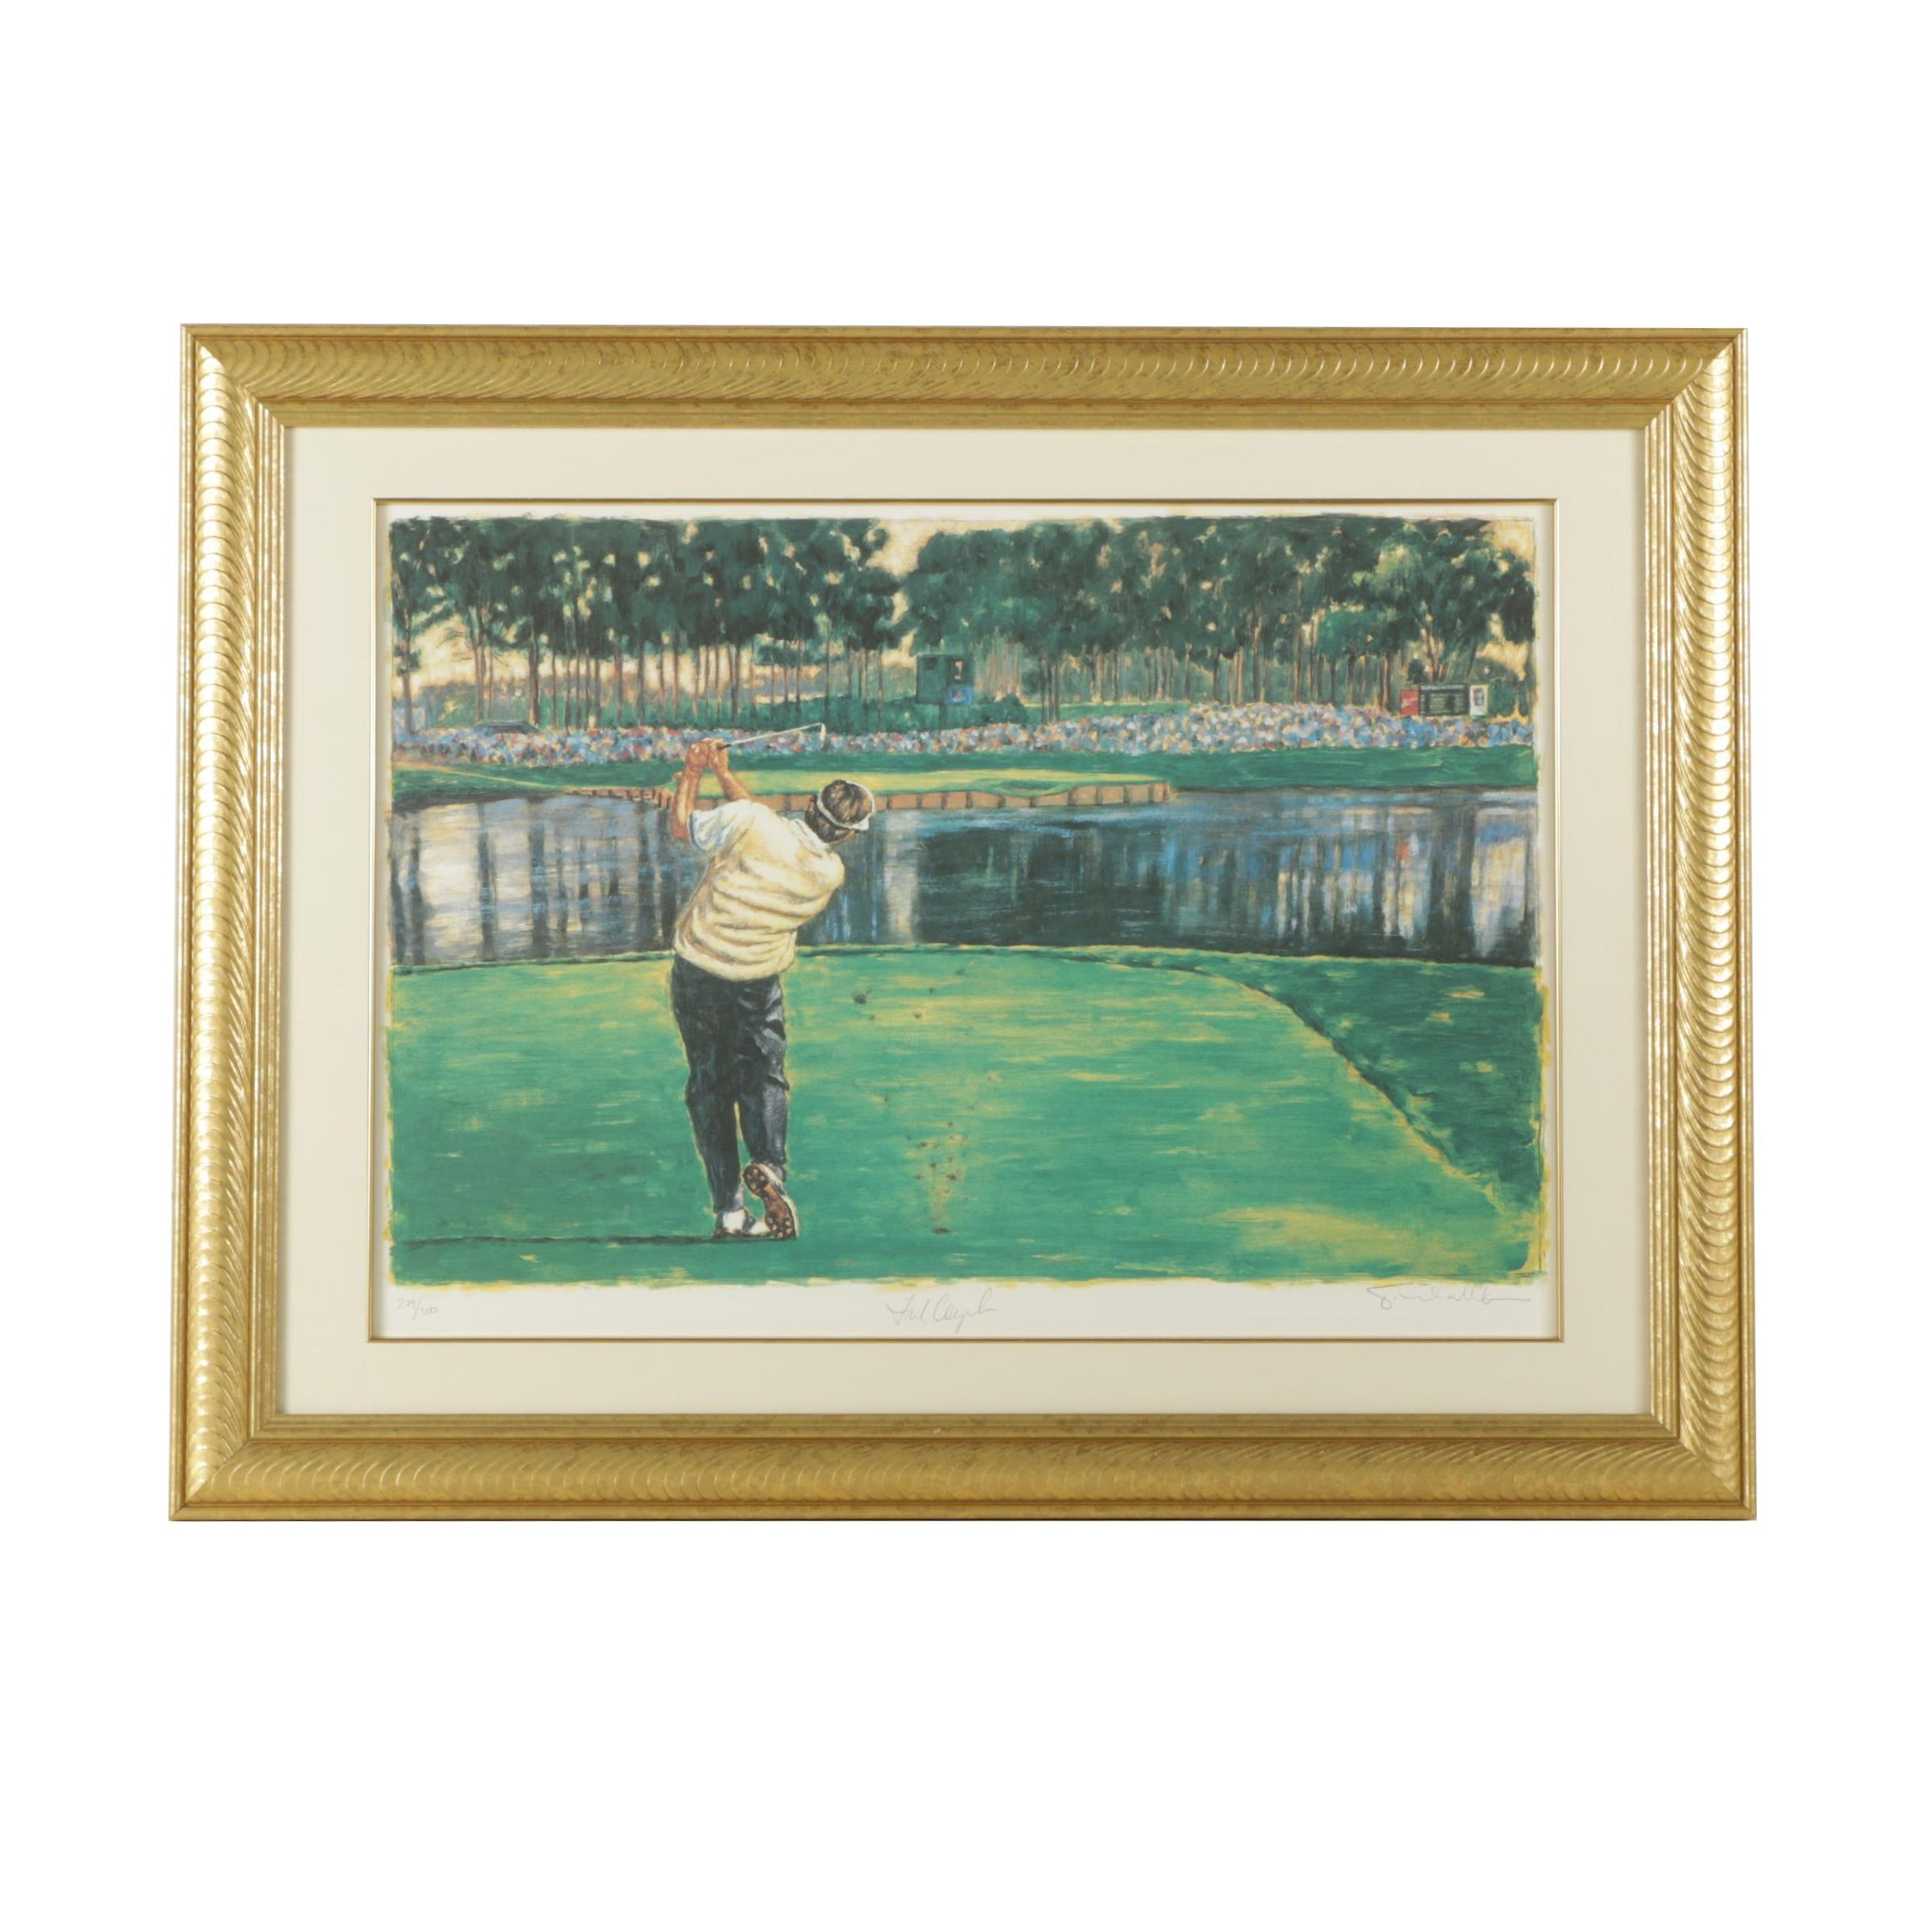 Signed Limited Edition Offset Lithograph Print after Painting of Golf Course